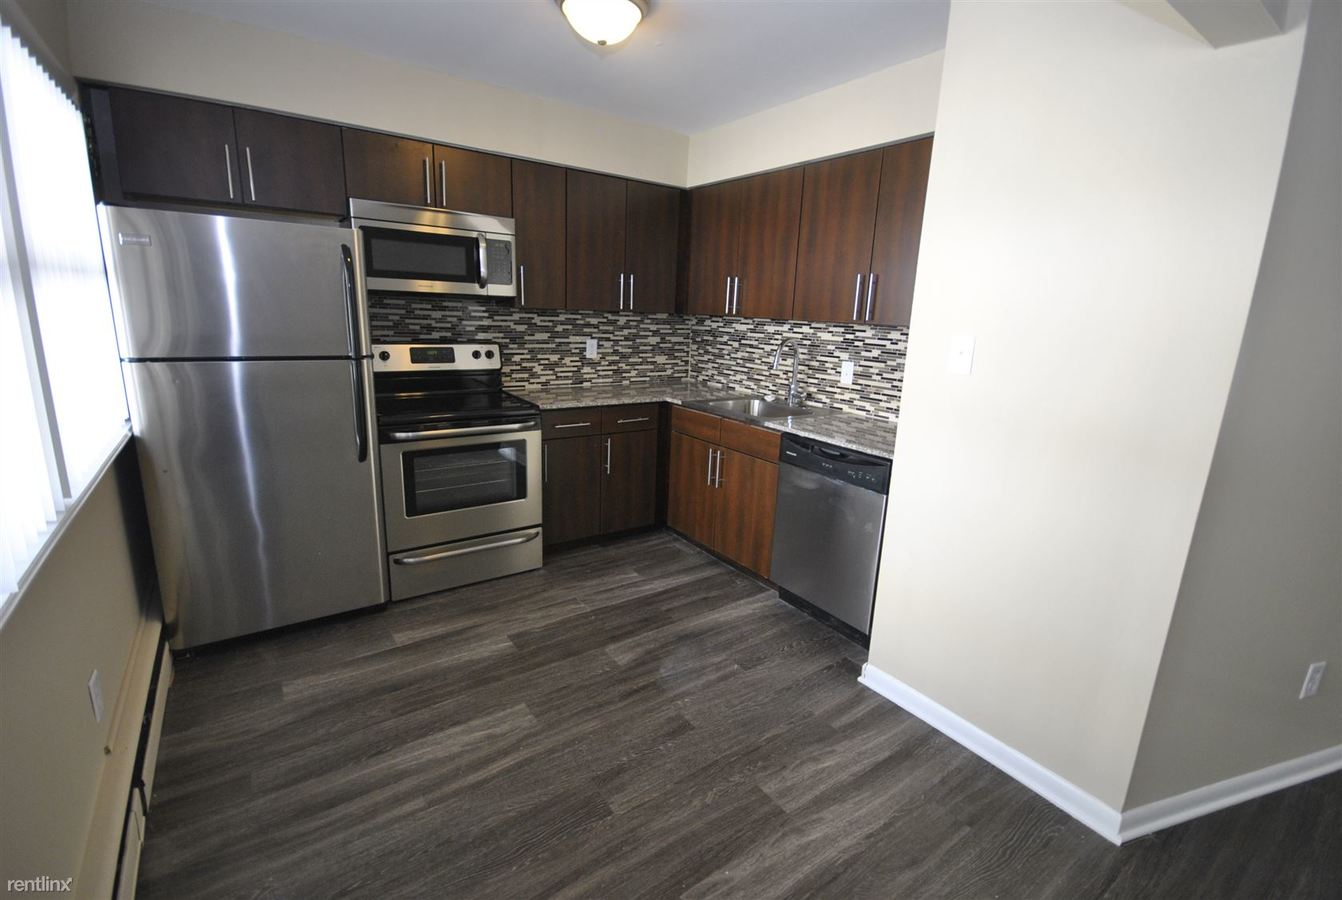 2 Bedrooms 1 Bathroom Apartment for rent at 727 E Kingsley St in Ann Arbor, MI